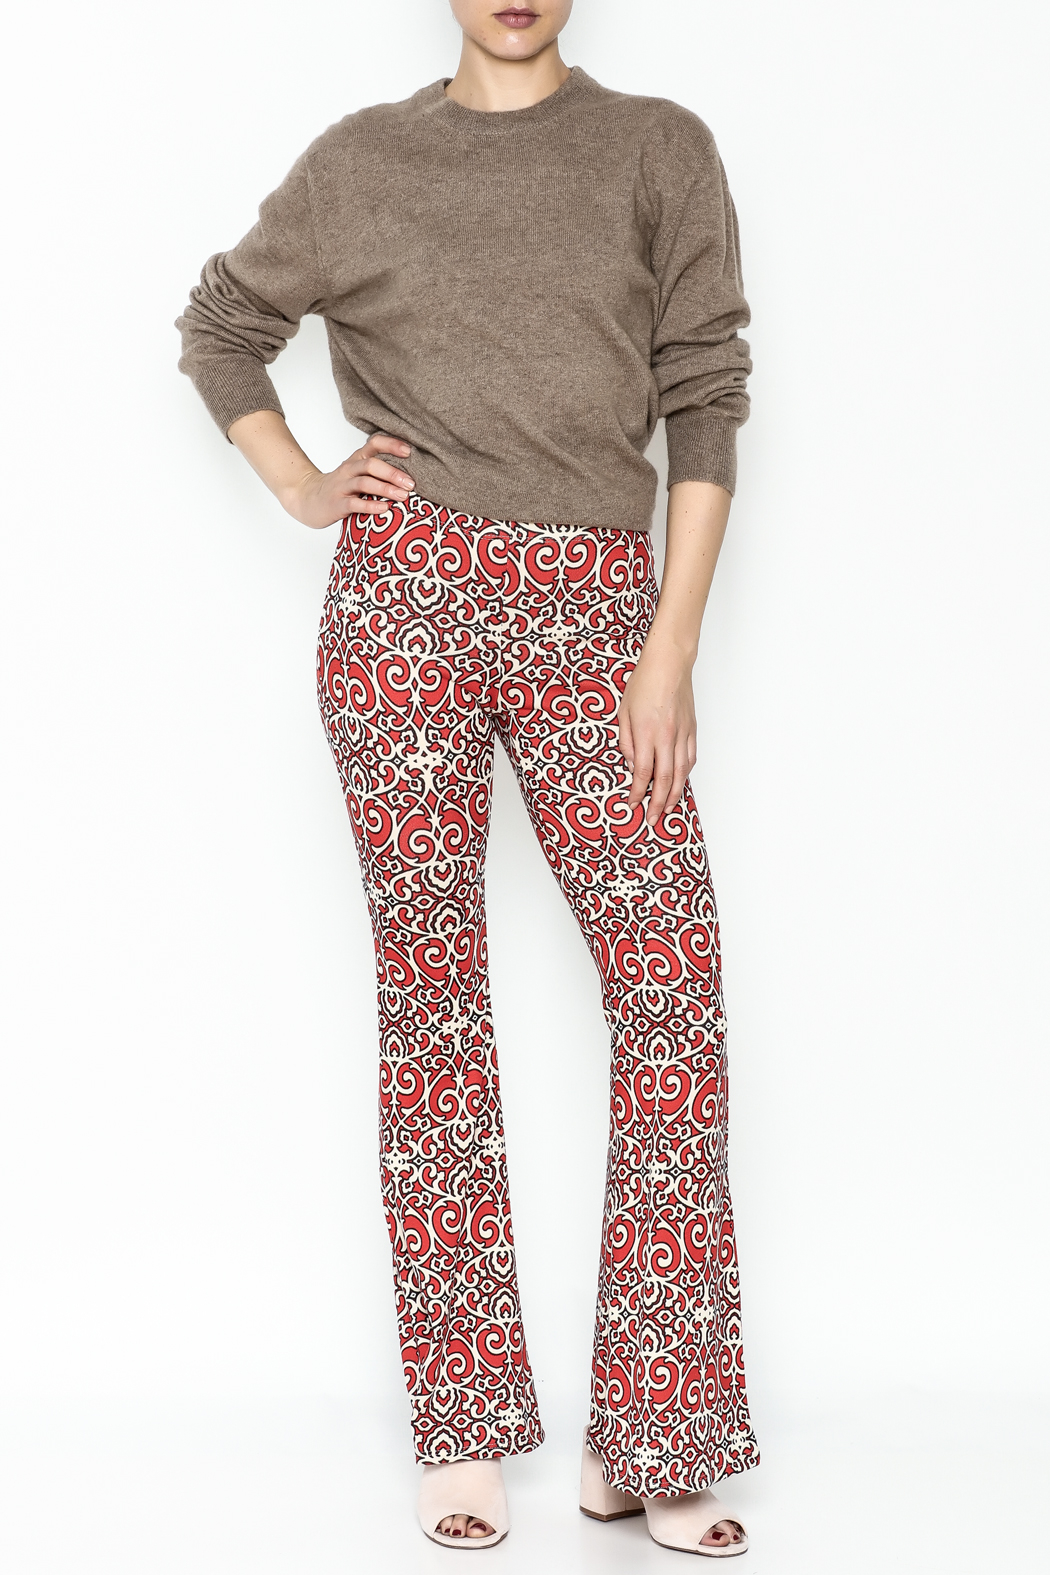 Emory Park Red Print Pants - Side Cropped Image